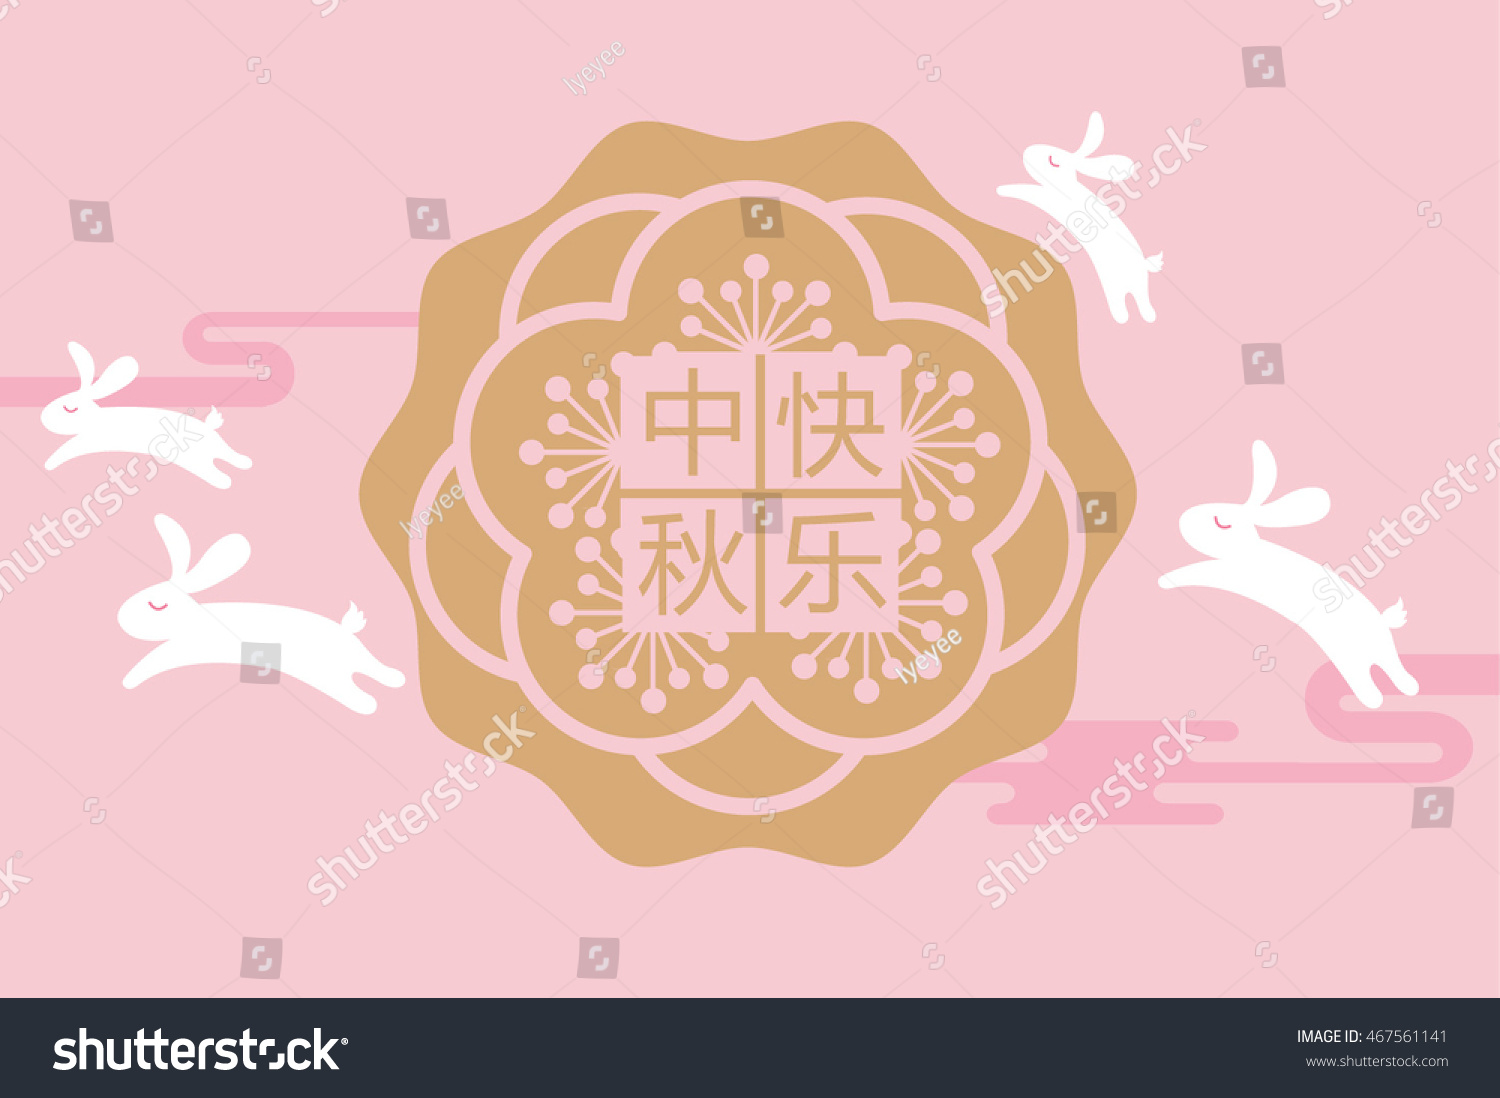 Moon cake mid autumn festival greetings stock vector 467561141 moon cake mid autumn festival greetings template vectorillustration with chinese characters that read kristyandbryce Choice Image